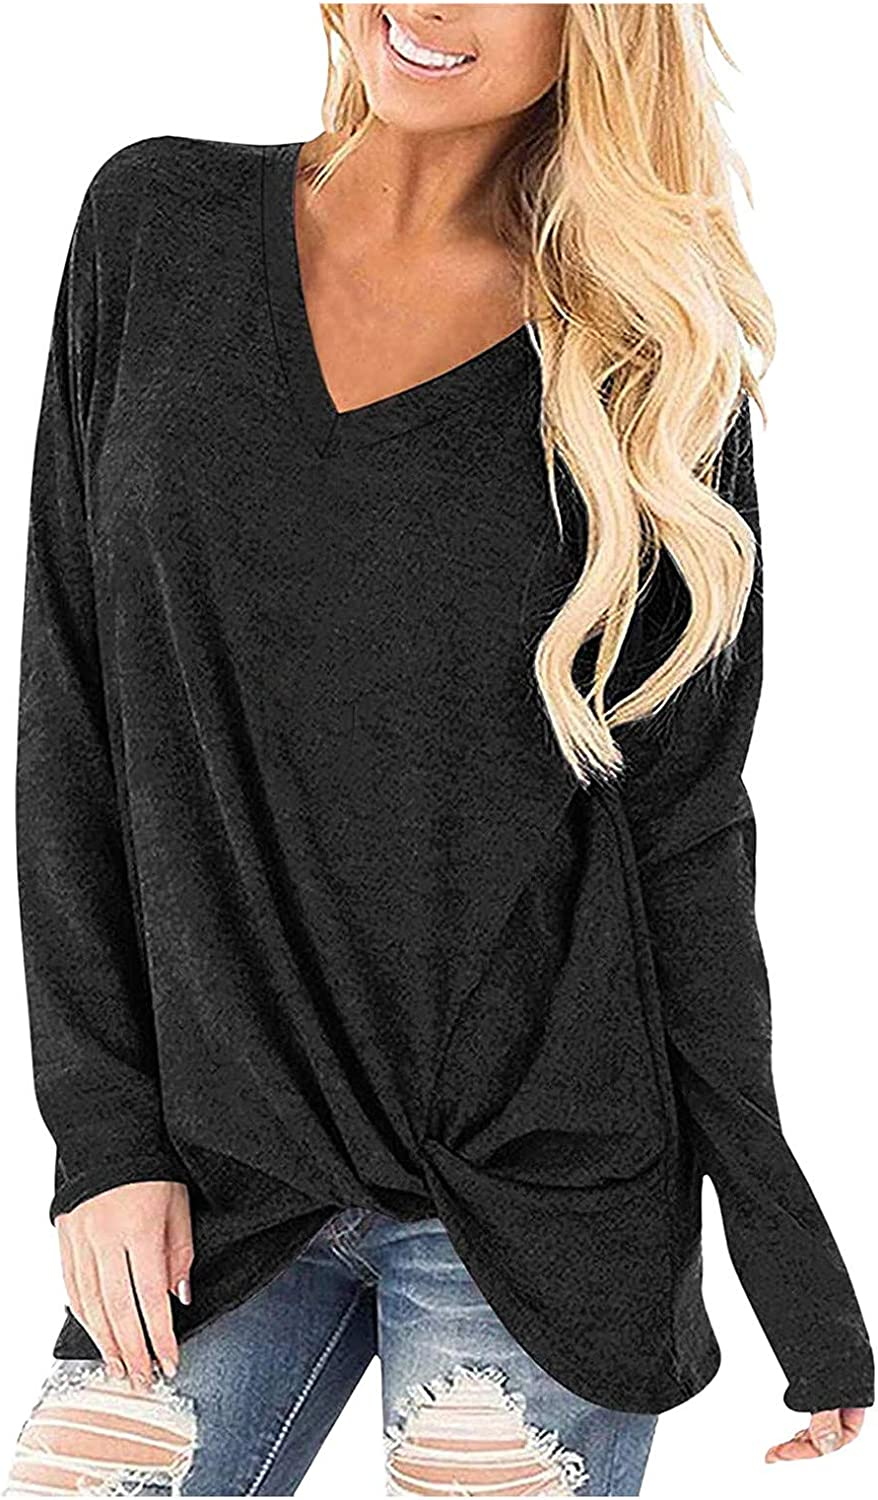 Womens Solid Color Stitching Knotted Not Off-Shoulder V Neck Long Sleeve Blouse for Spring Autumn Wear Gift for Women